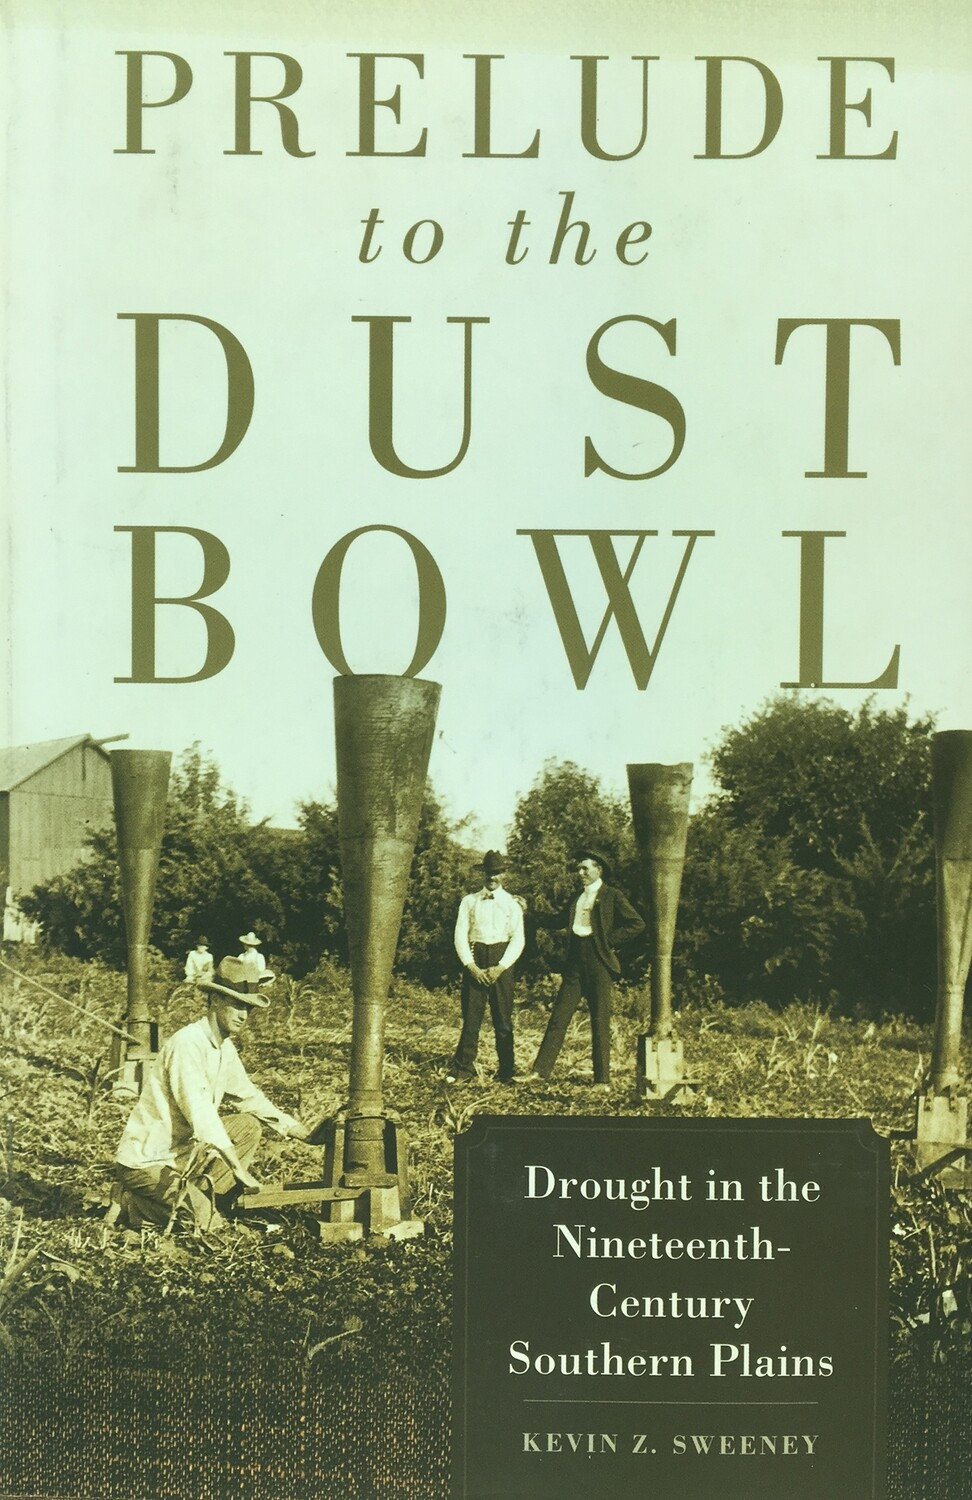 Prelude to the Dust Bowl